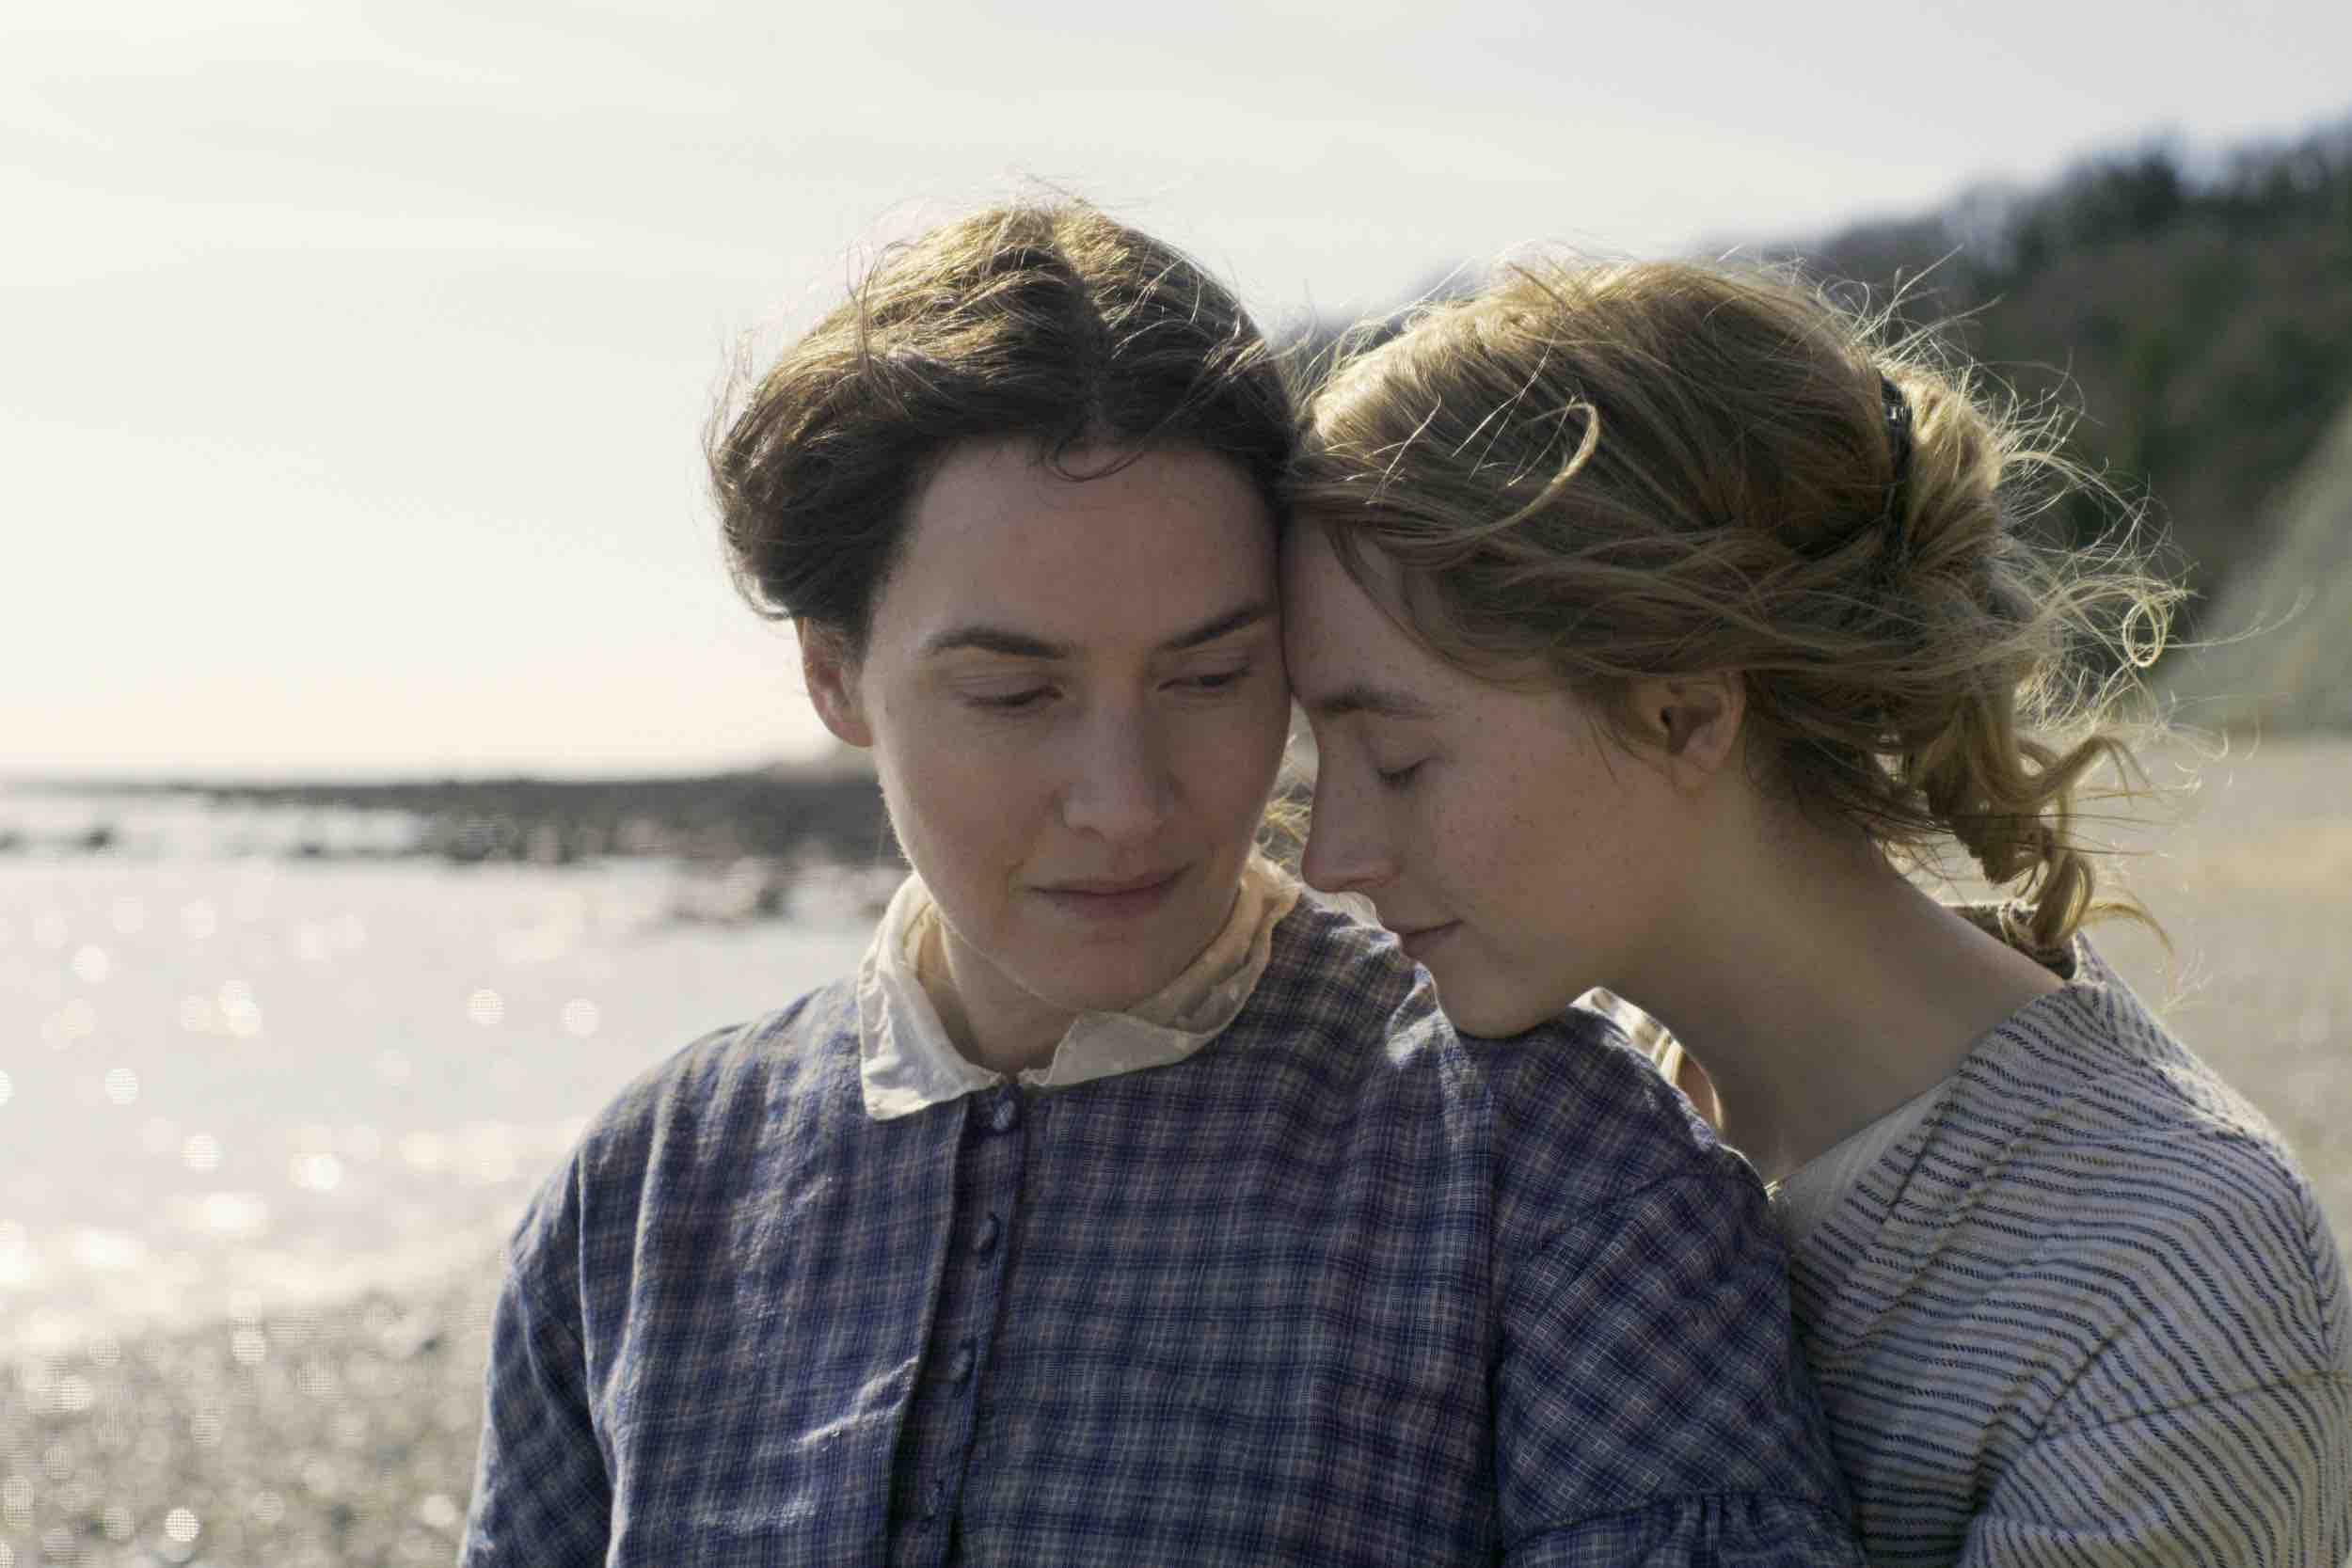 Ammonite Francis Lee saoirse ronan Kate Winslet God's Own Country